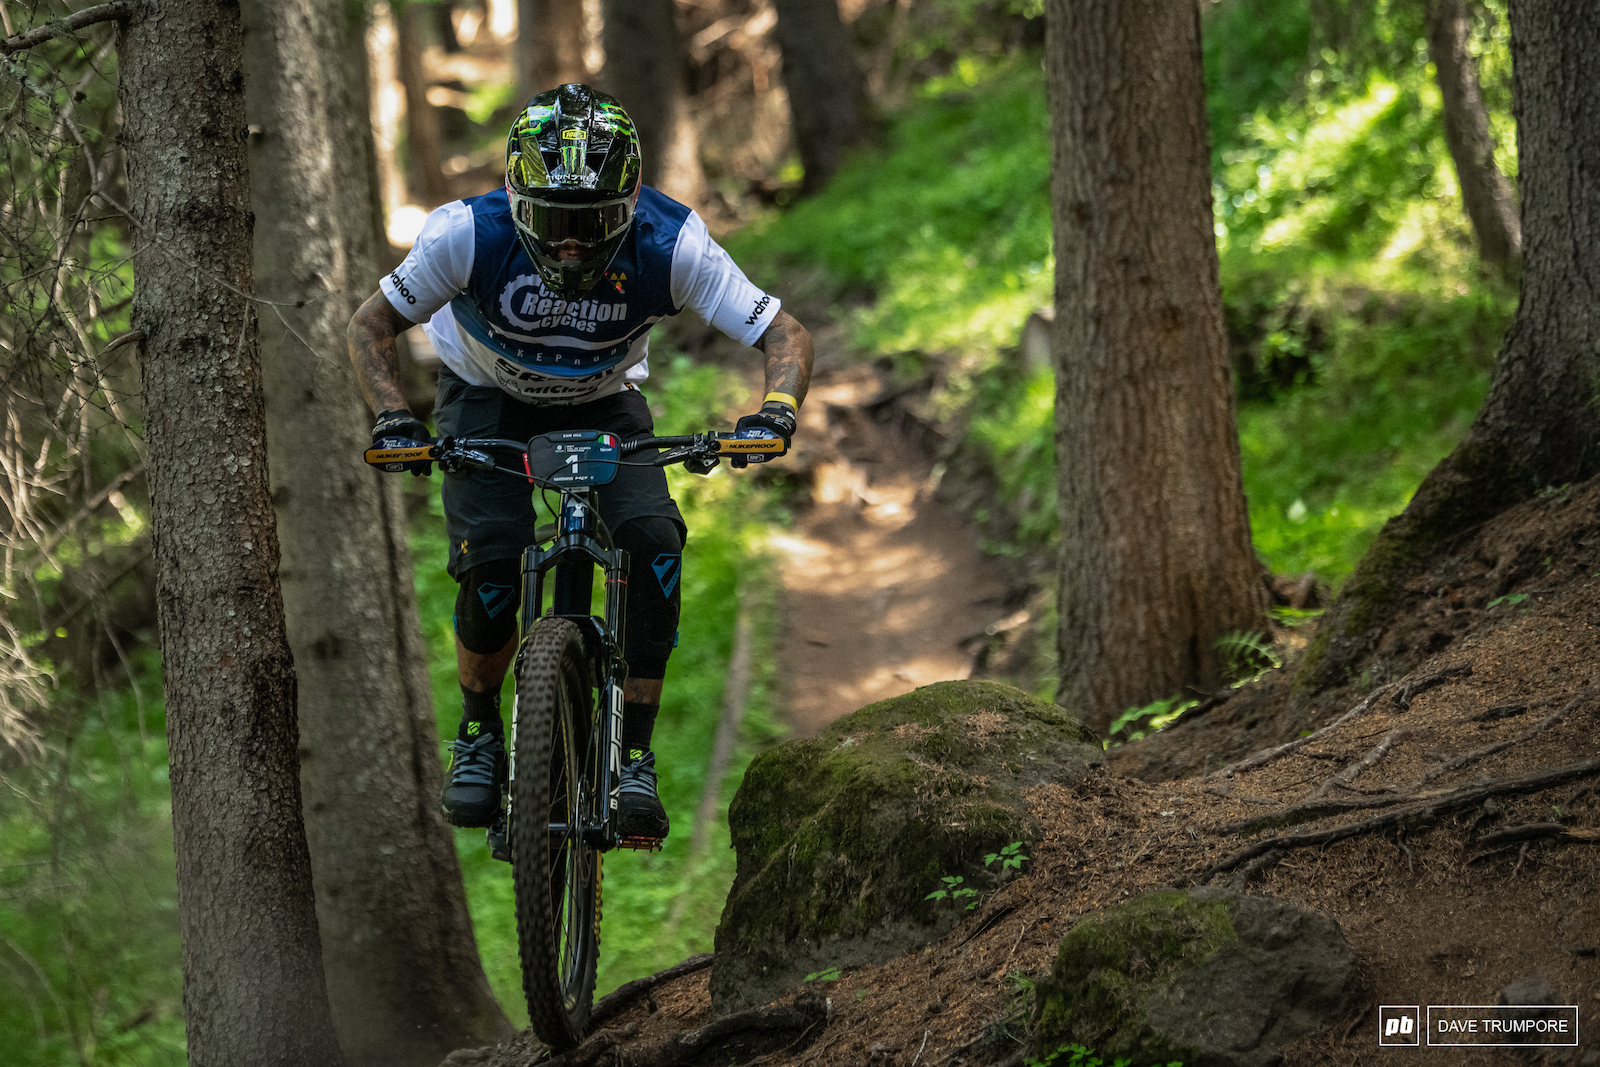 Sam Hill was doing his own thing and practicing stages out of order. Keeping lines a secret and his true speed hidden